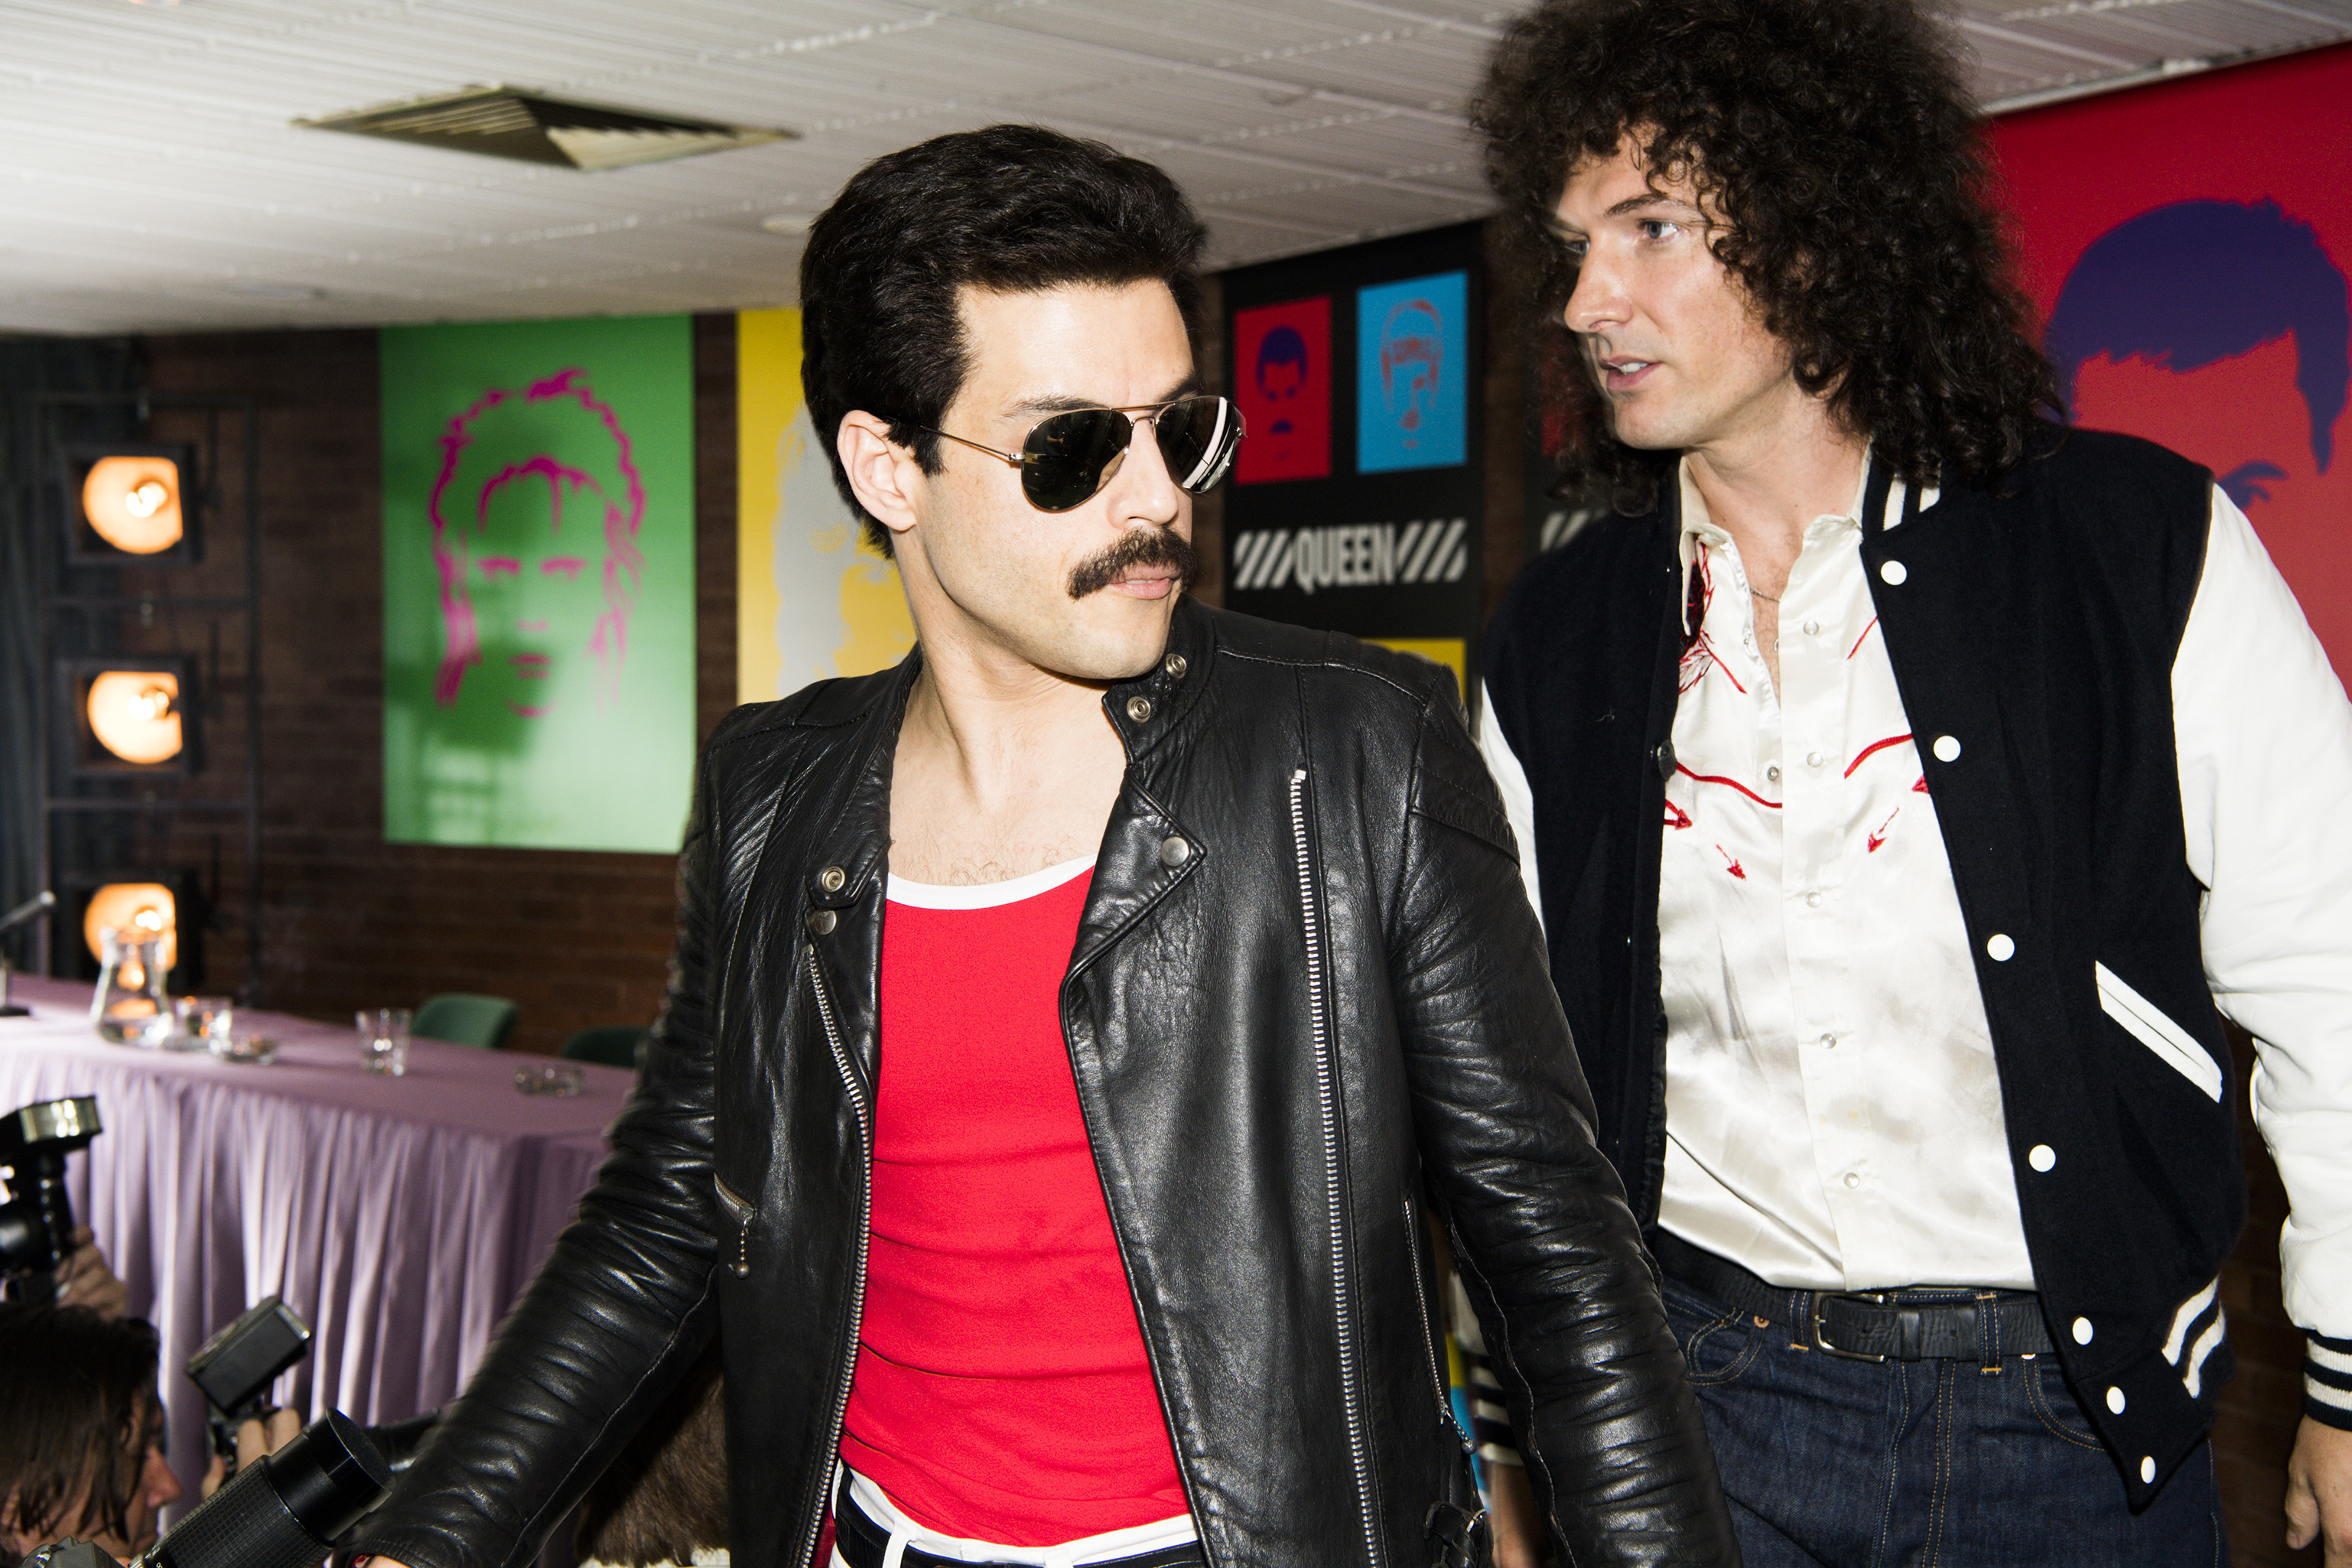 'Bohemian Rhapsody': Rami Malek's Freddie Mercury Footage Stuns Cinemacon, but Without a Director